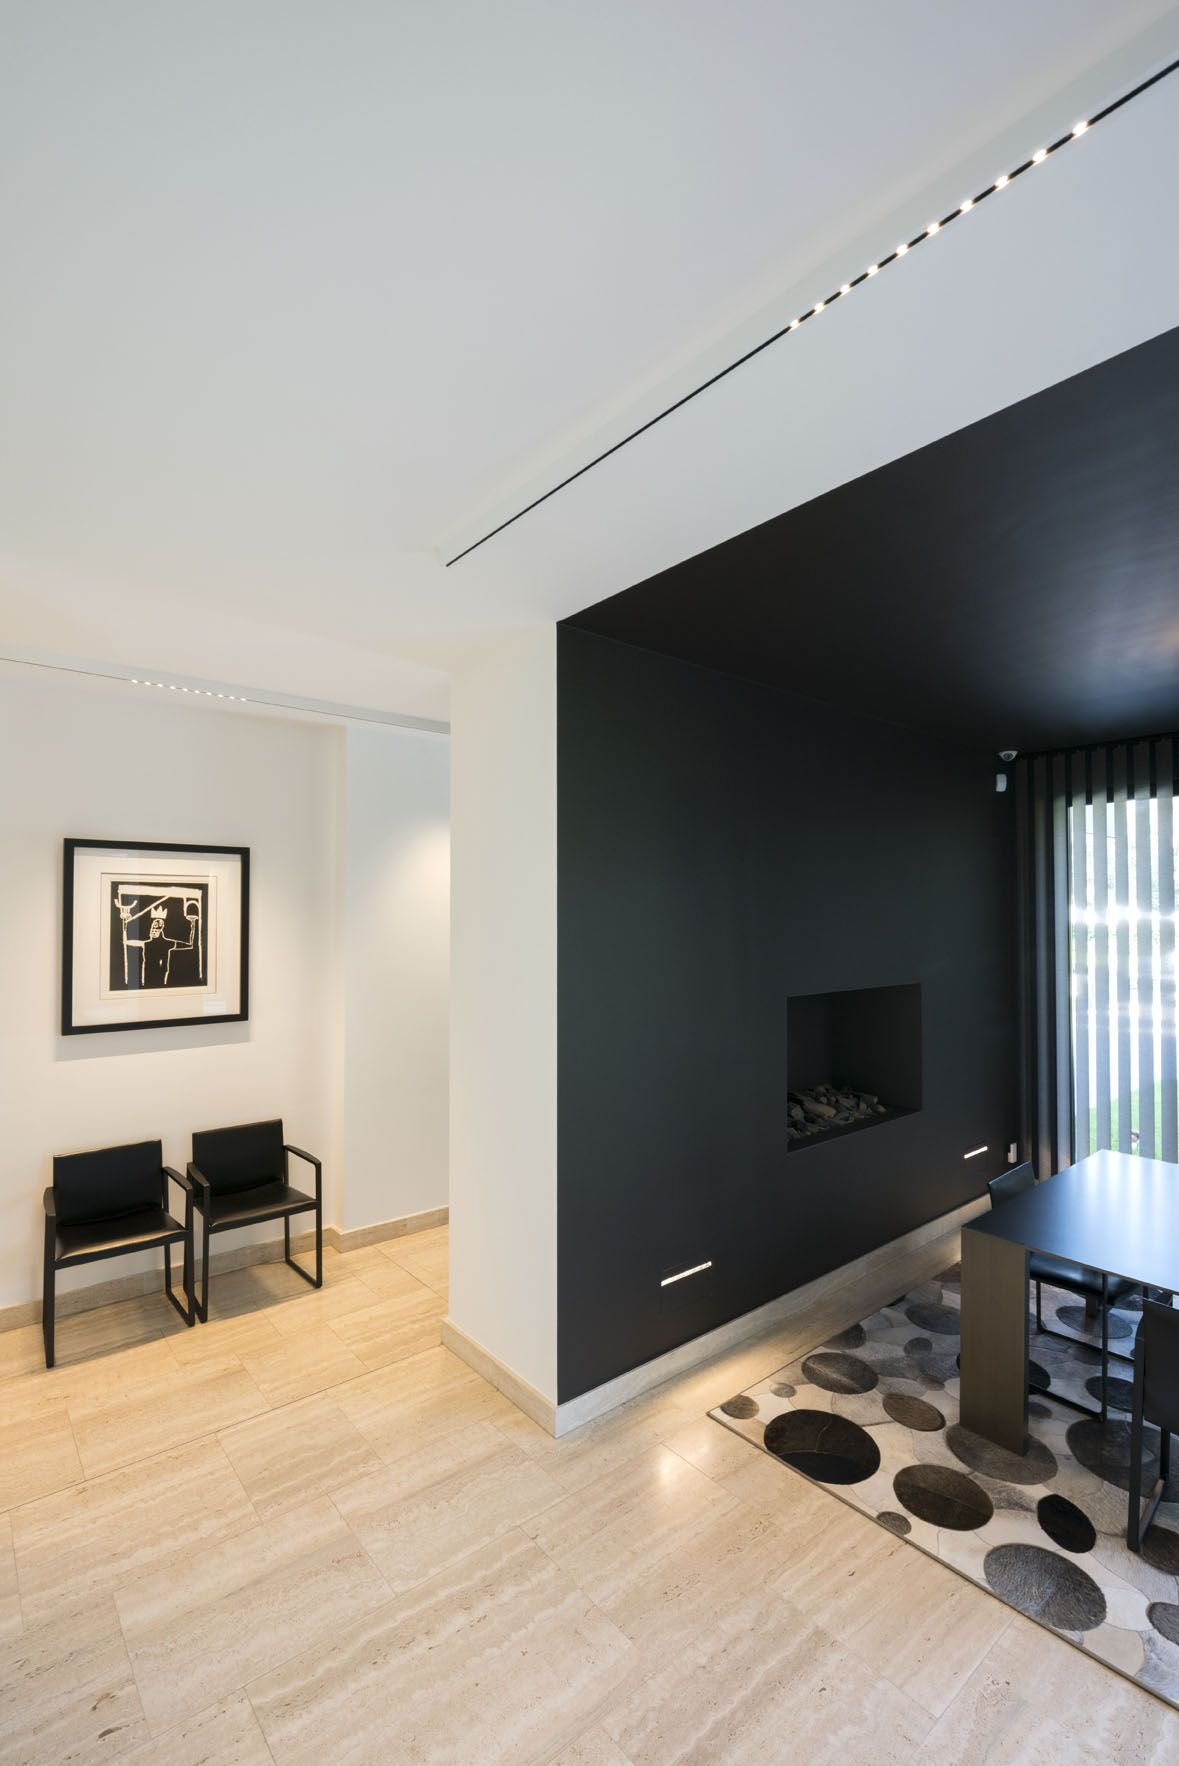 White And Black Nuit Led Profile Surface Mounted Together With Black Wall Mounted Trimless Recessed Dining Room Inspiration Black Walls Dining Room Interiors